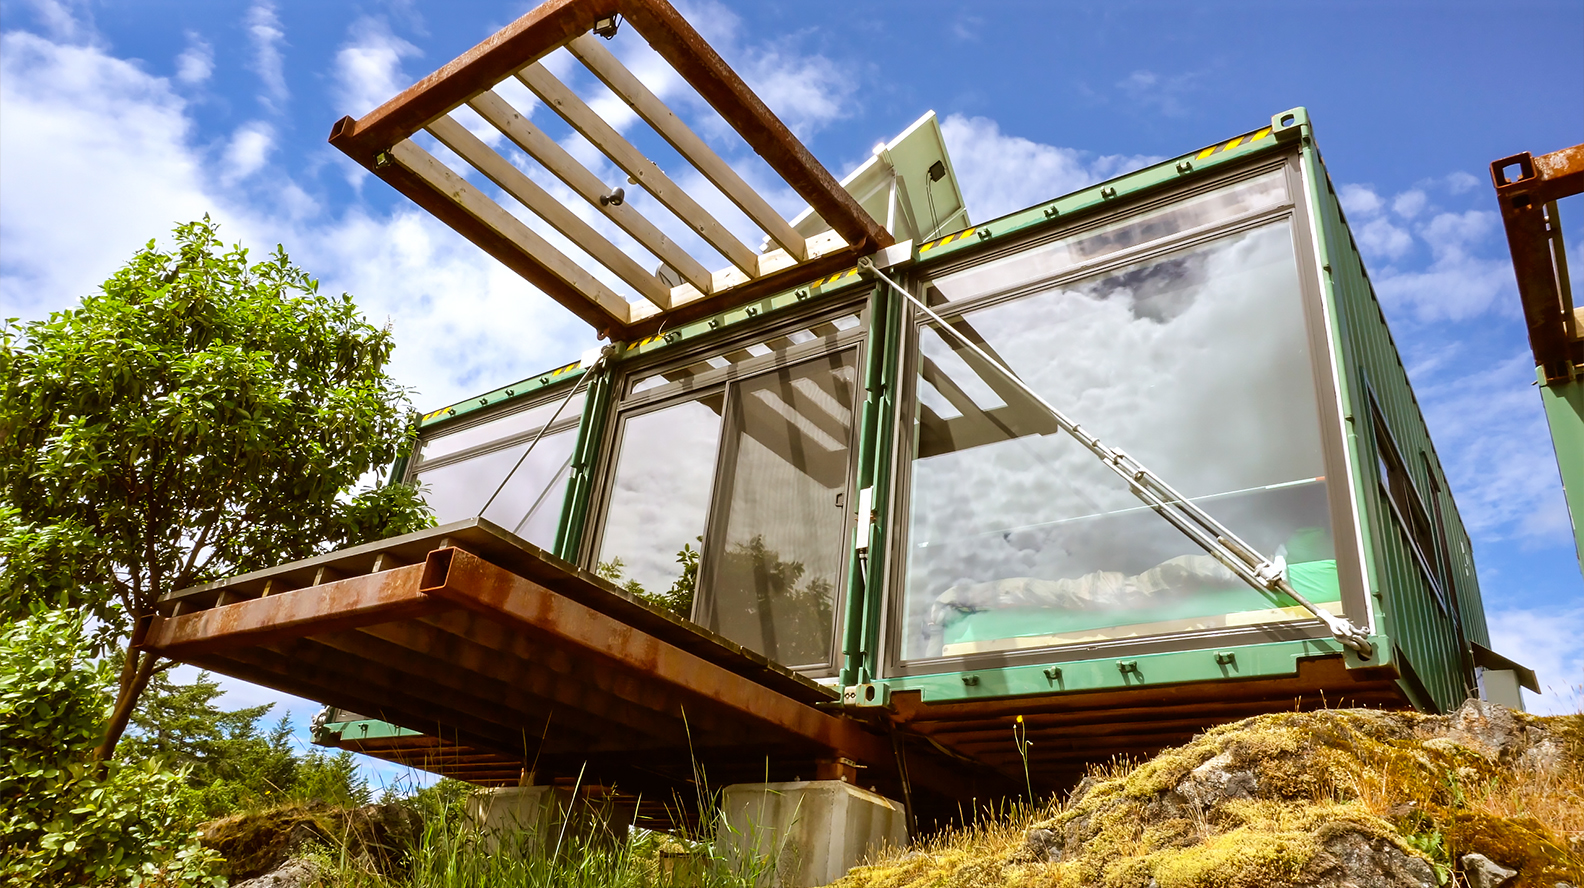 Stunning Off Grid Shipping Container Home On Mountain Top